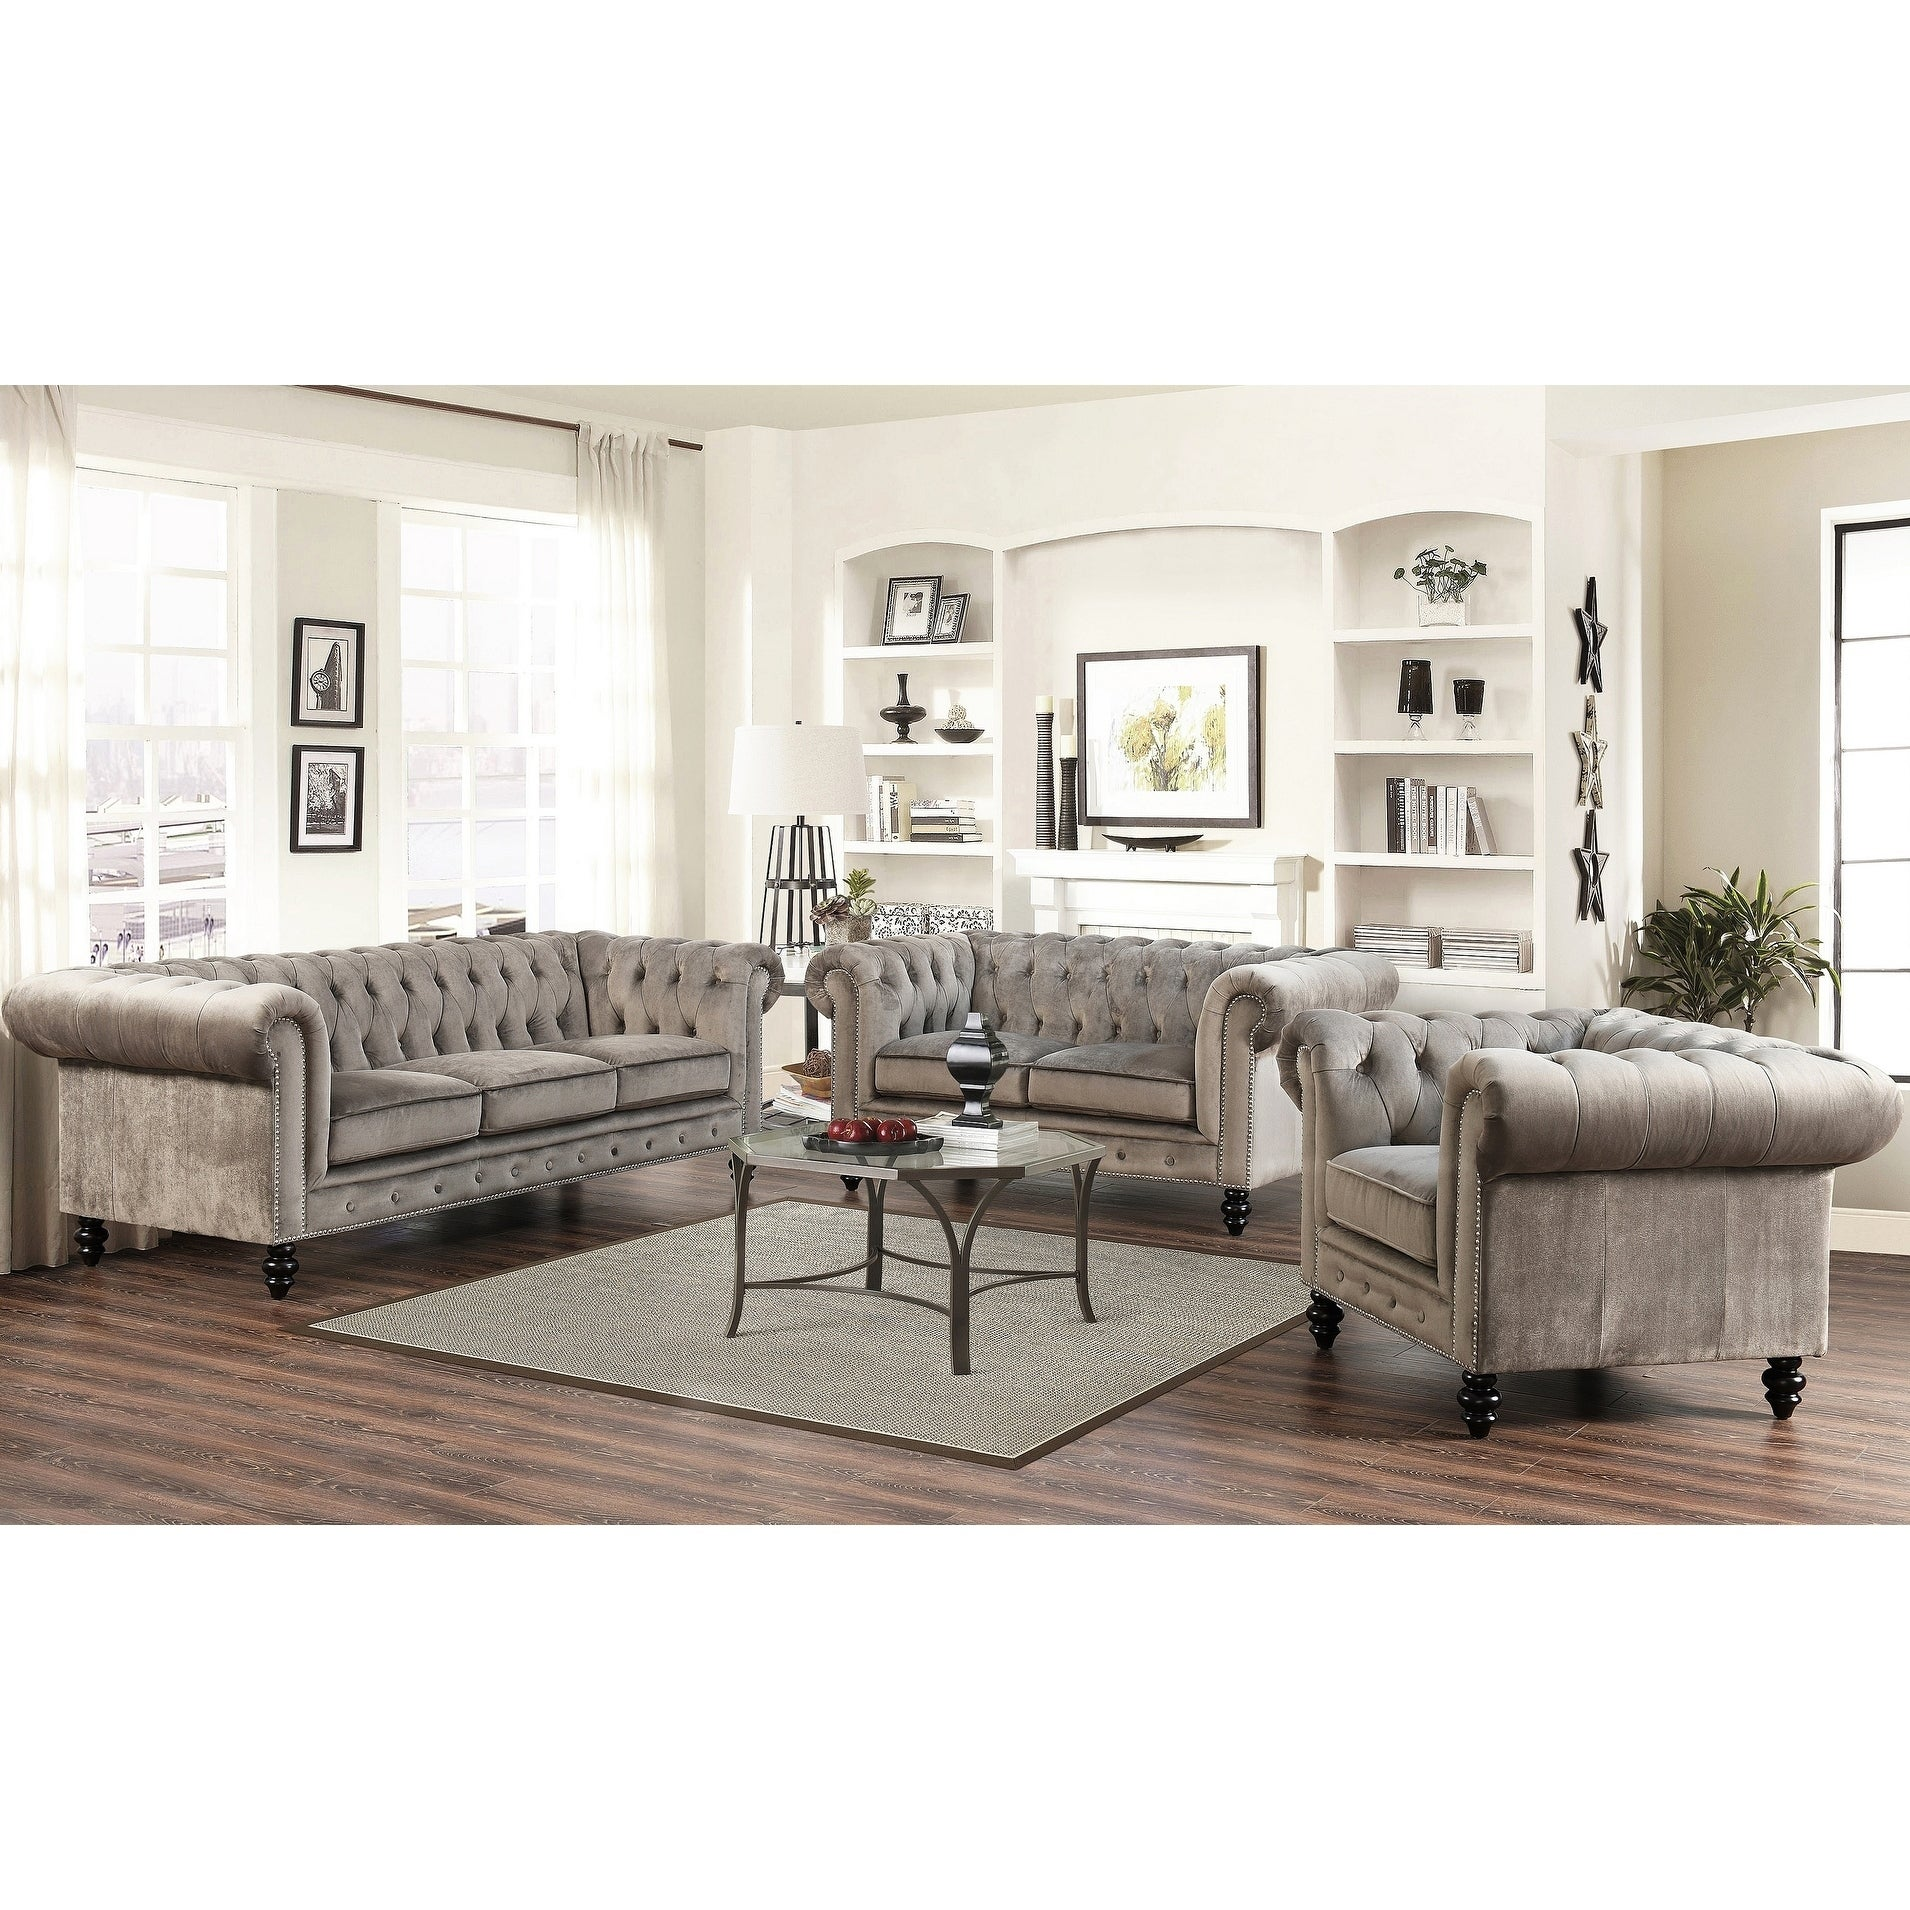 Gracewood Hollow Dib Grey Velvet-3 Piece Living Room Set